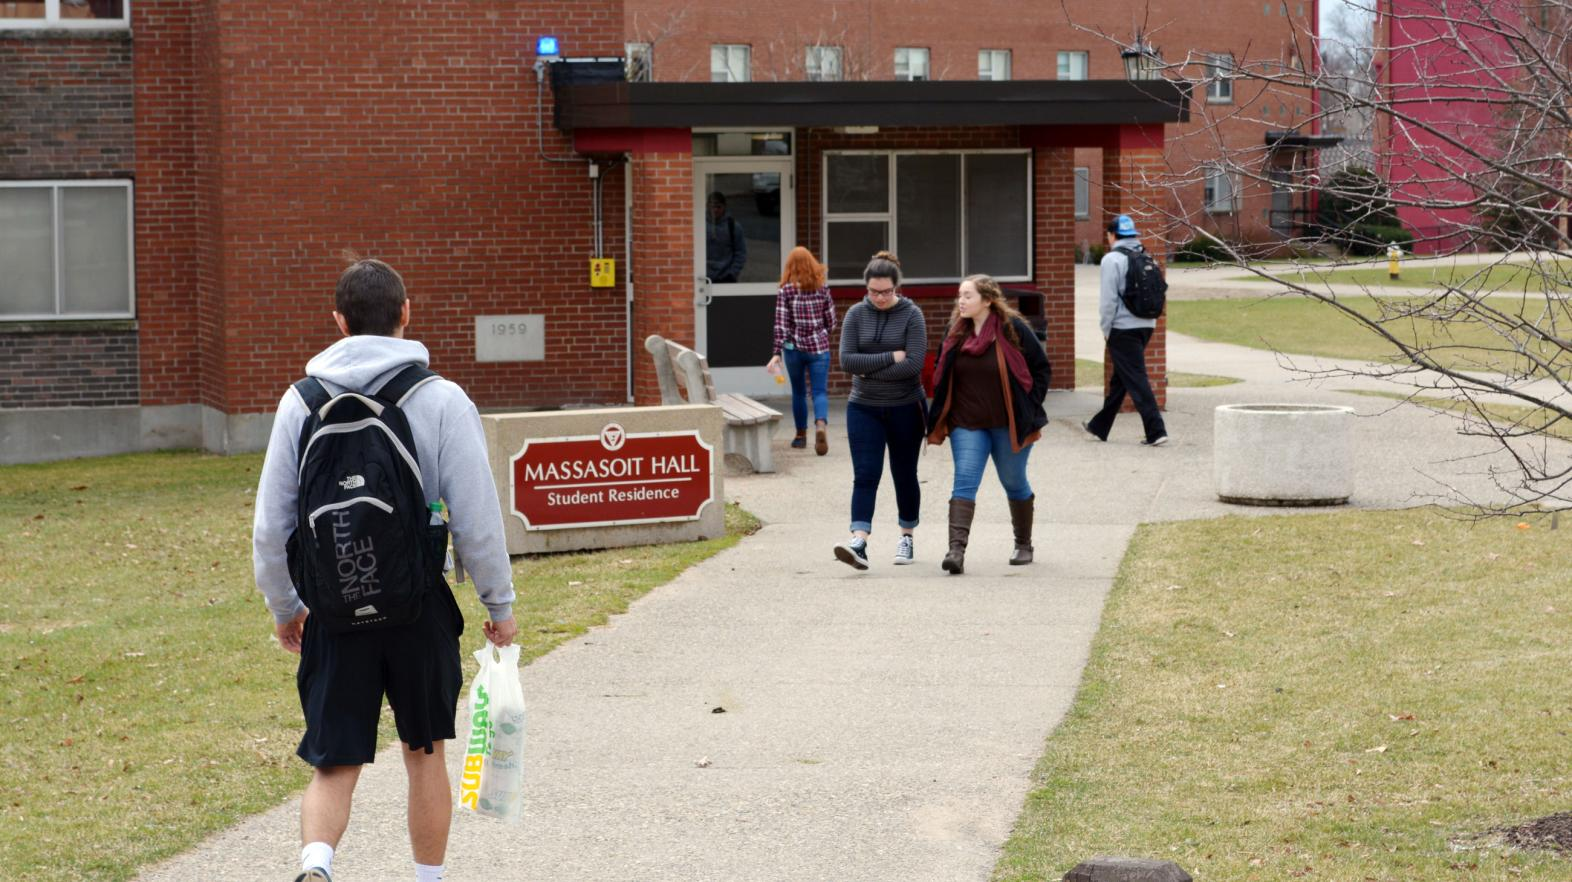 The front of Massasoit Hall with students walking into the building.